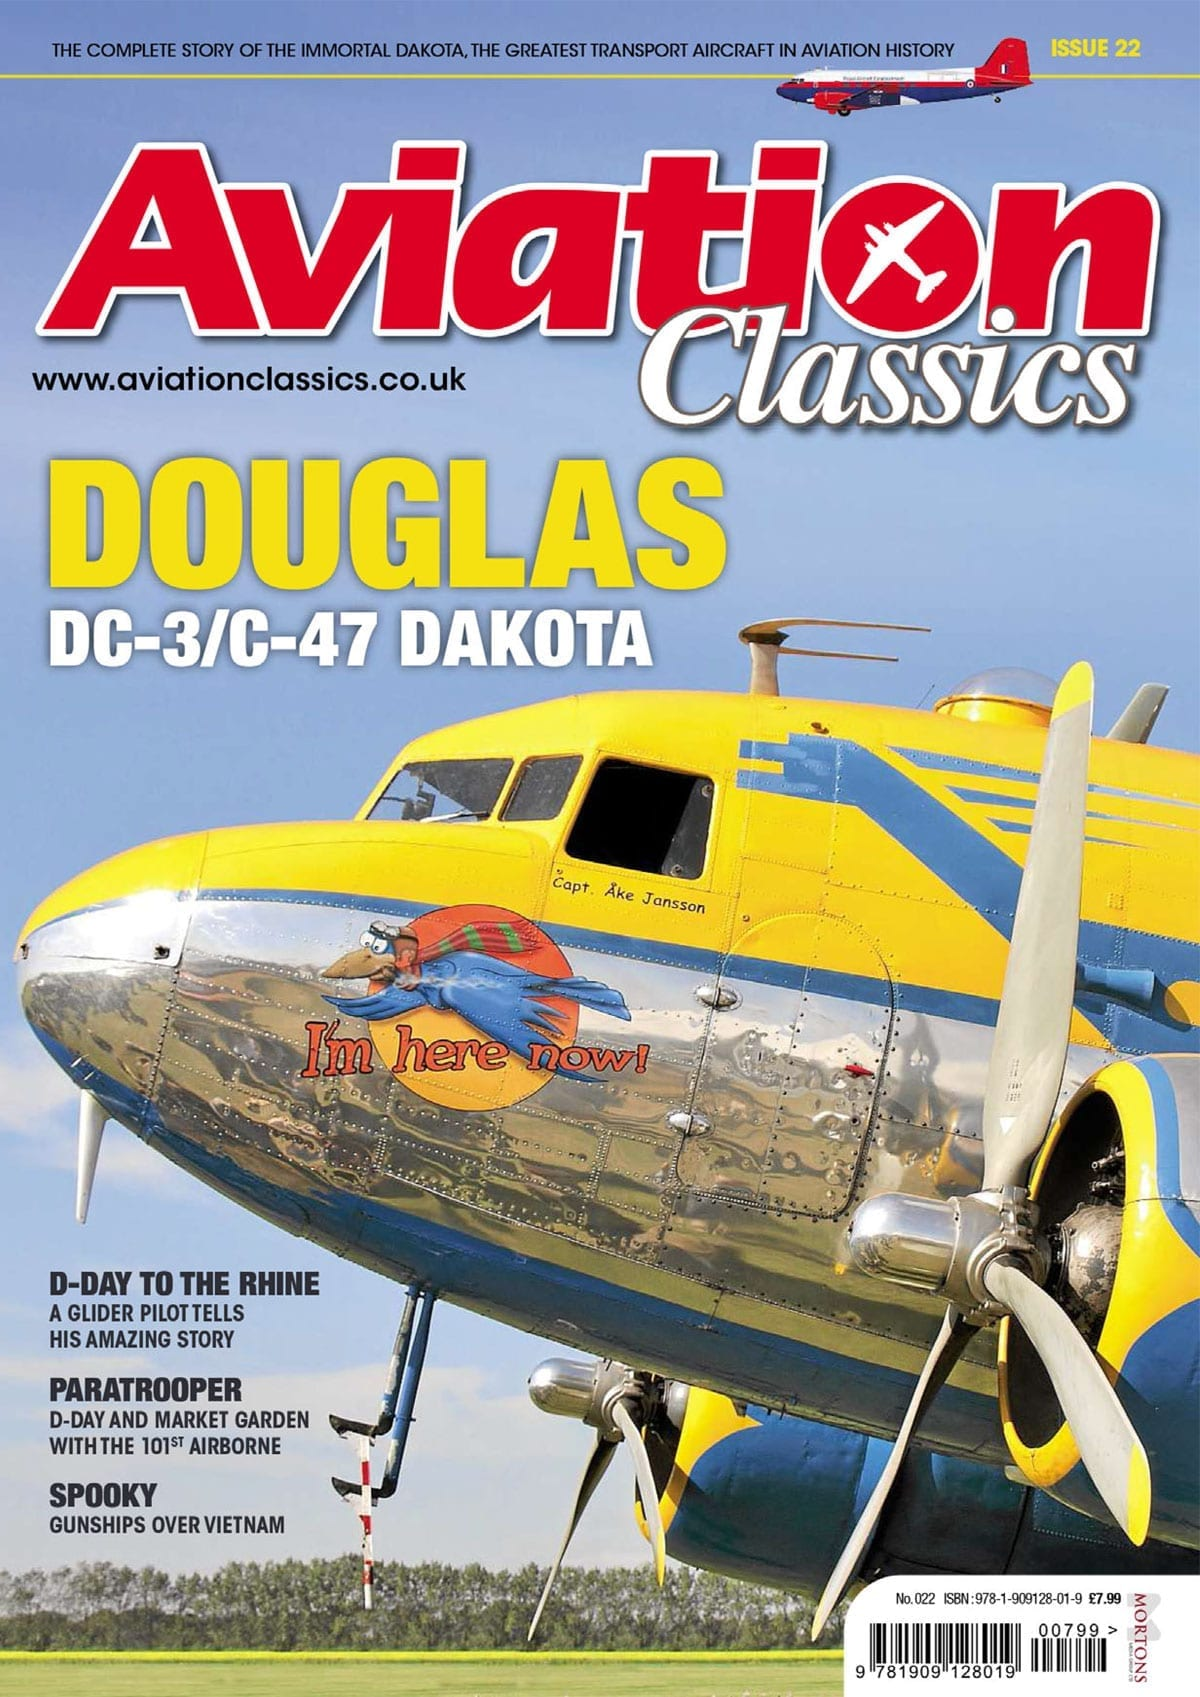 Aviation Classics - Douglas DC-3/C-47 Dakota